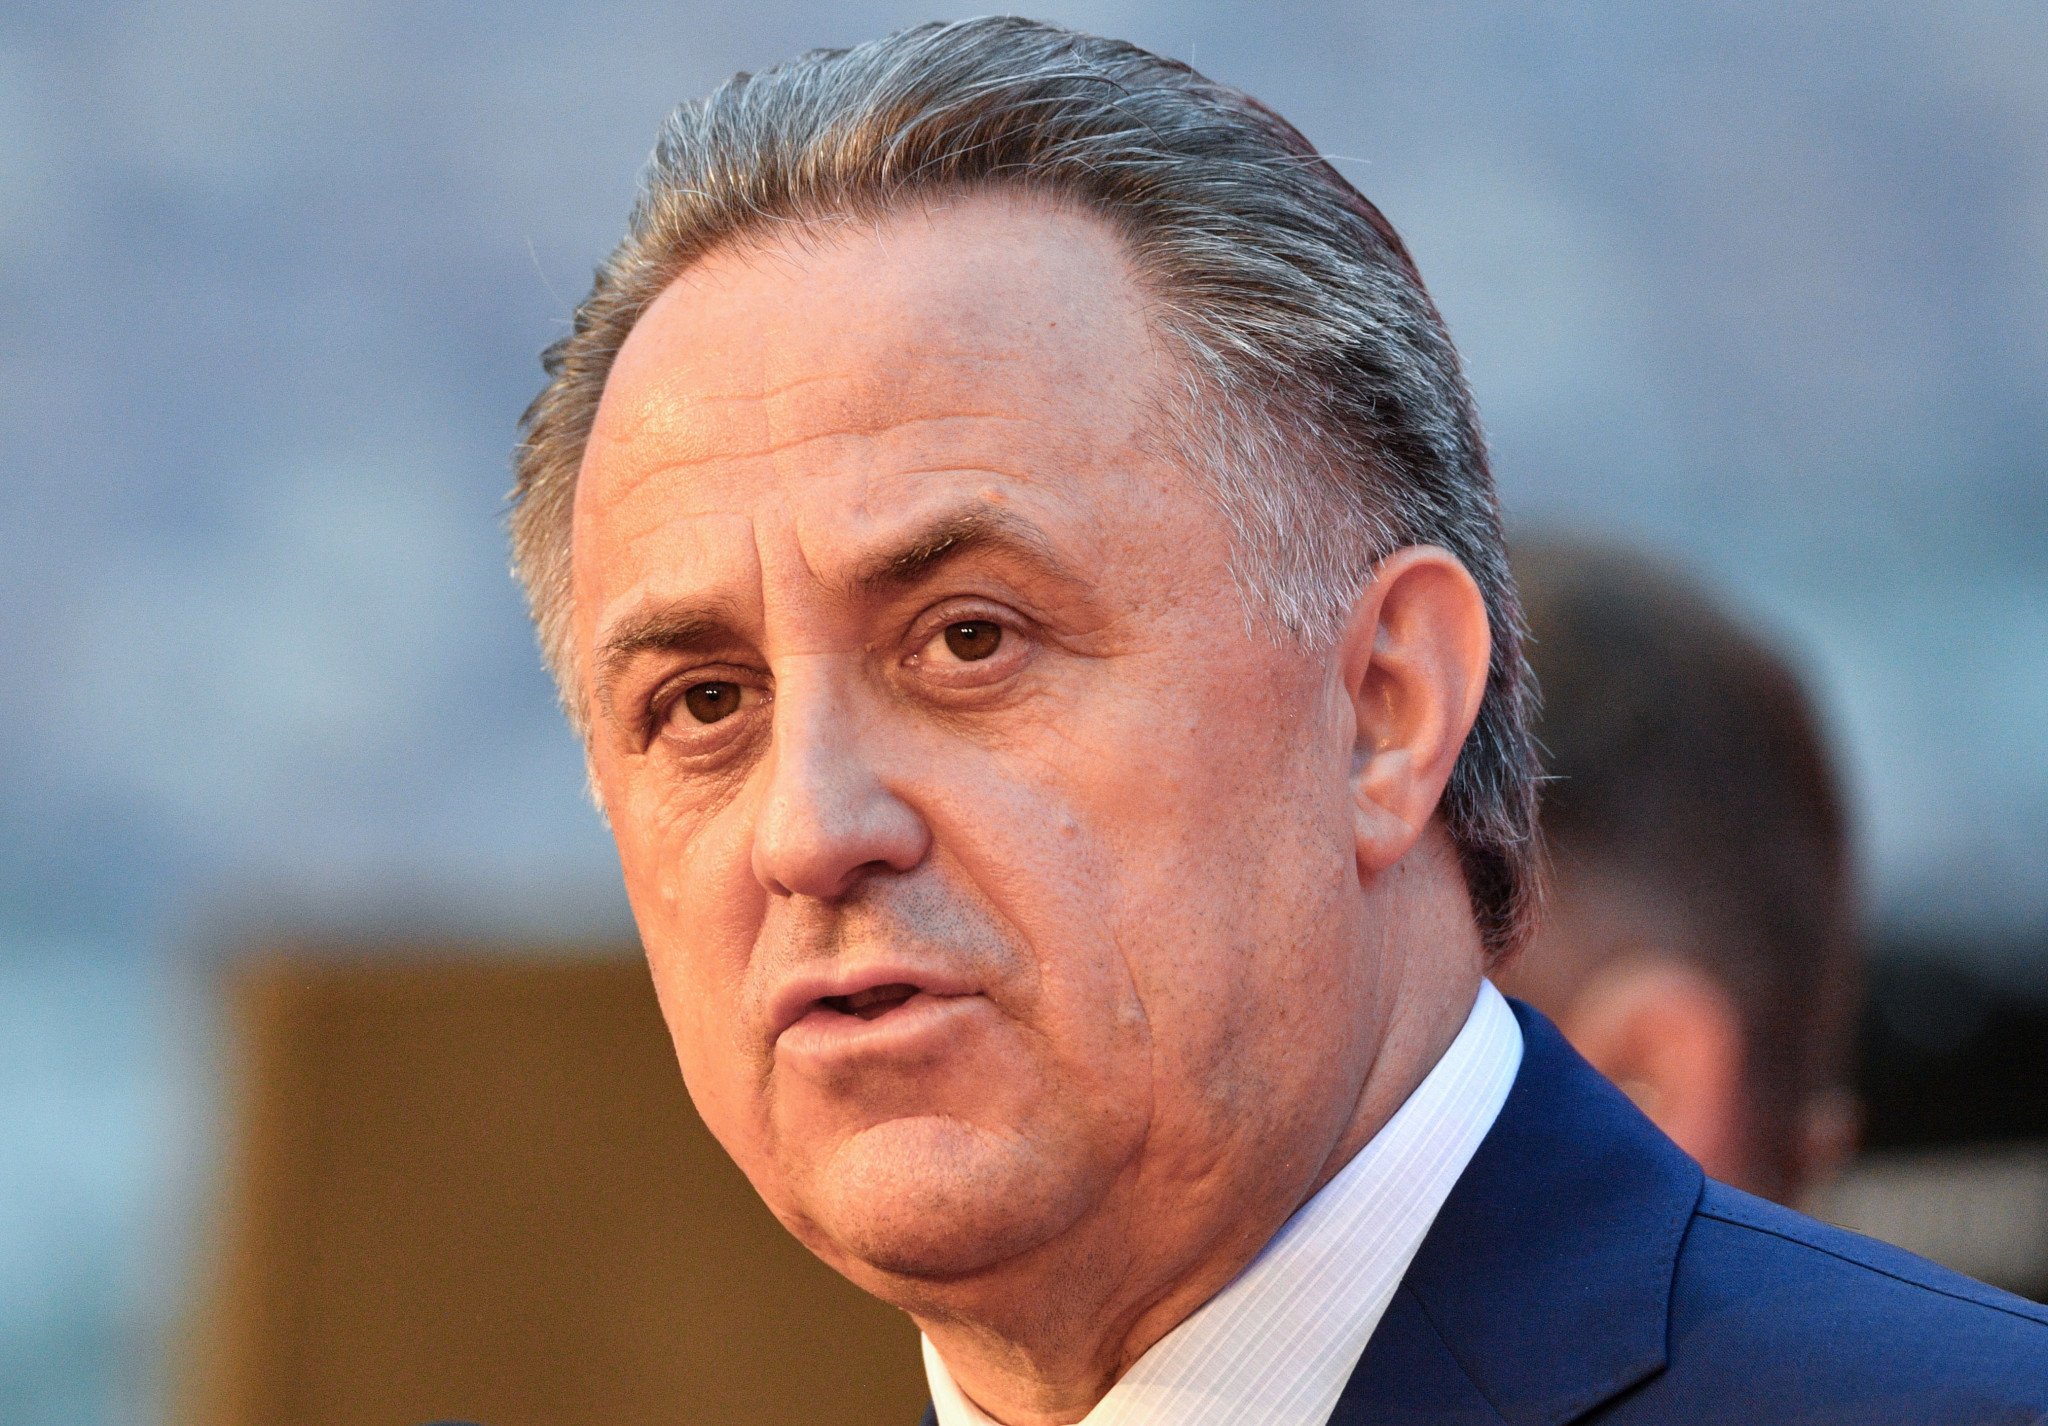 Russian Deputy Prime Minister Vitaly Mutko is among those to welcome the internal report ©Getty Images